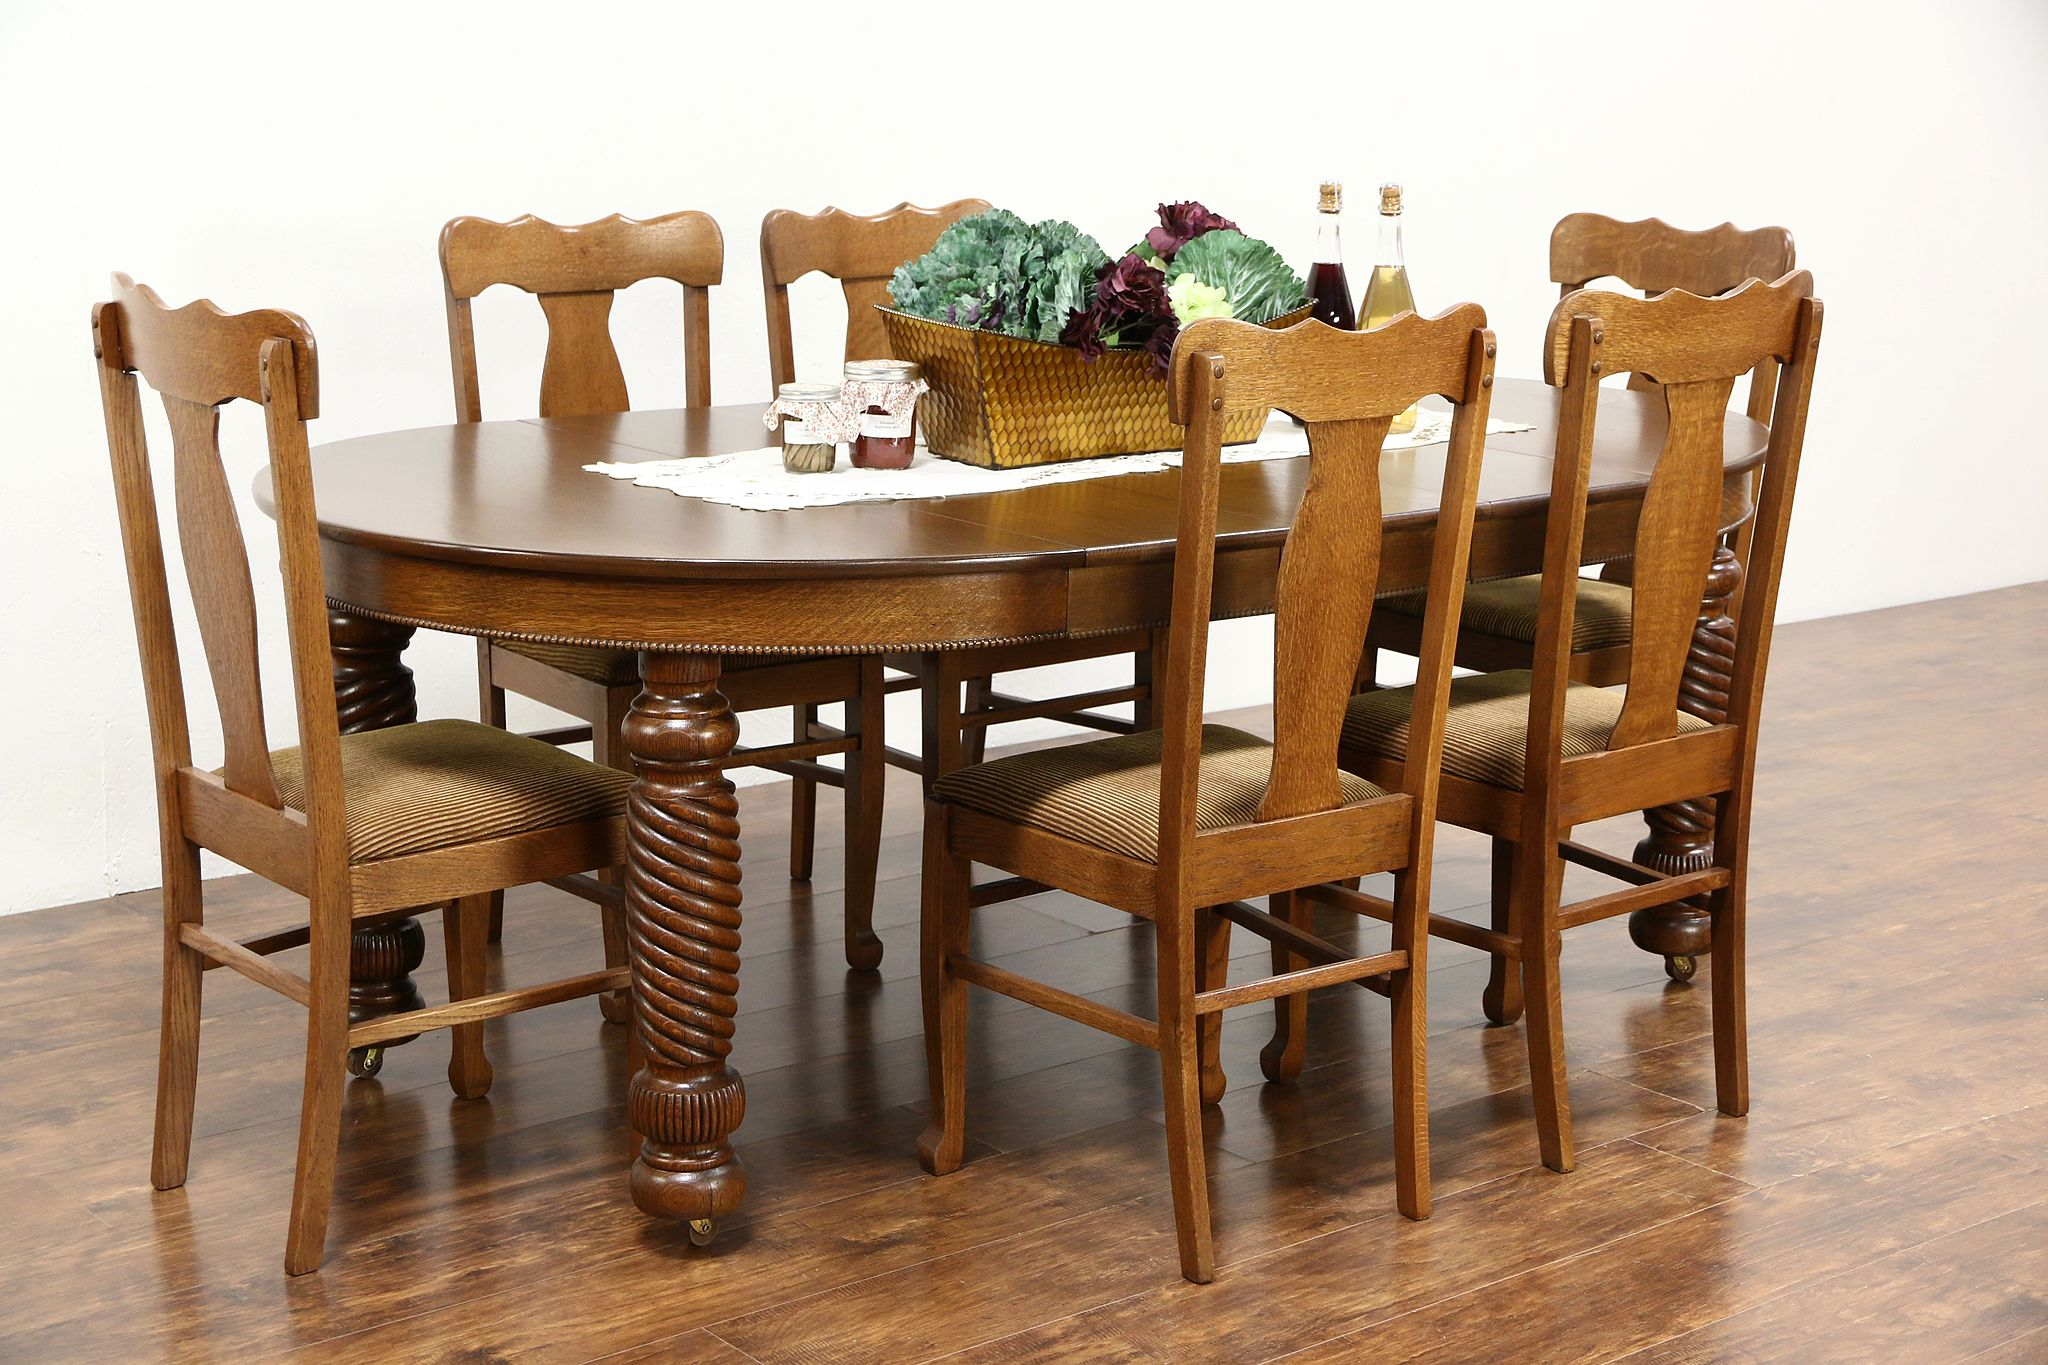 Round Oak Antique Dining Table Leaves Spiral Legs - Dining table with 3 leaves